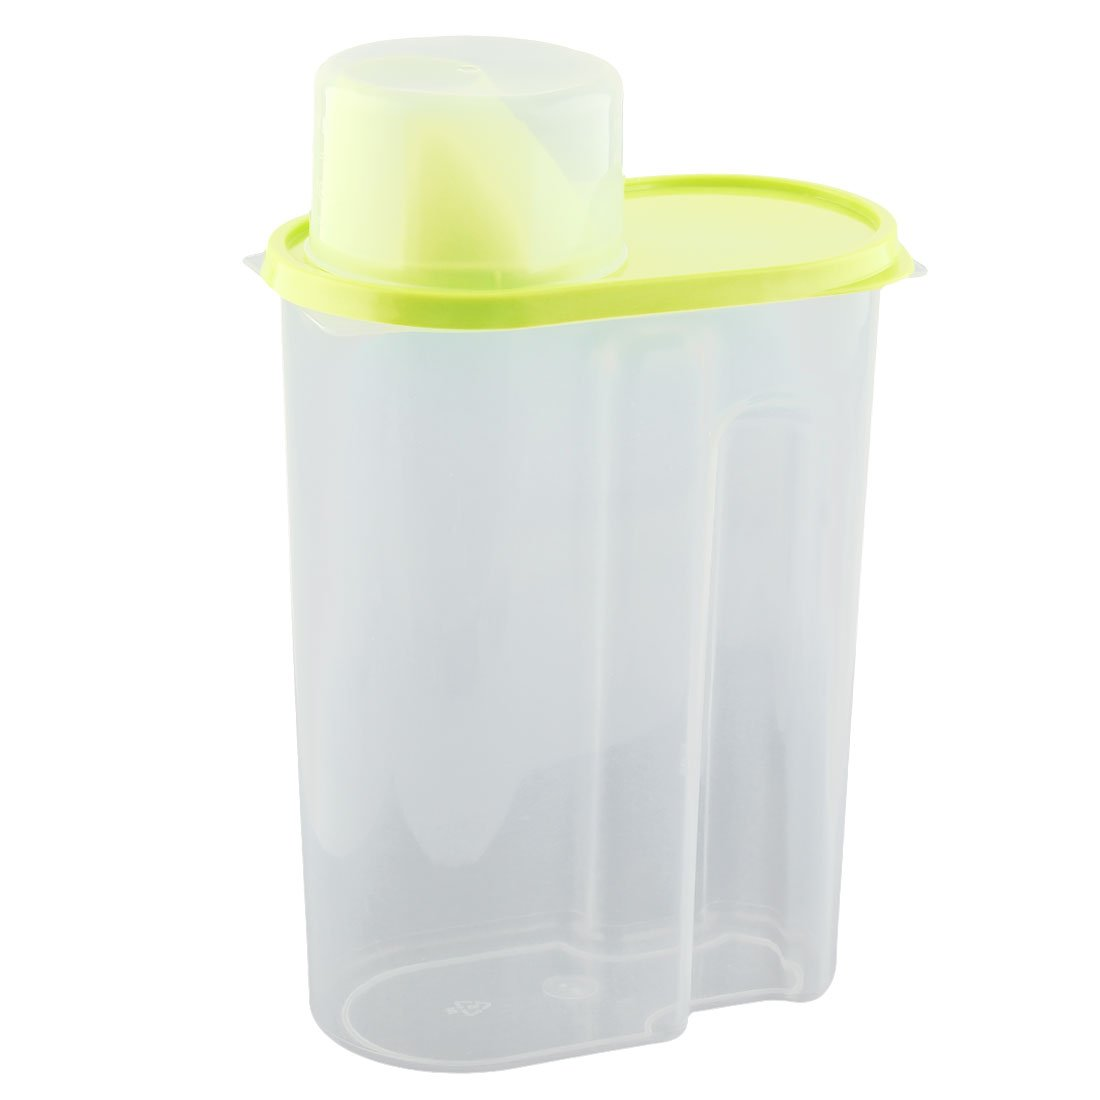 uxcell Plastic Family Kitchenware Cereal Grain Bean Rice Food Fresh Storage Box Case 2.5L Green Clear